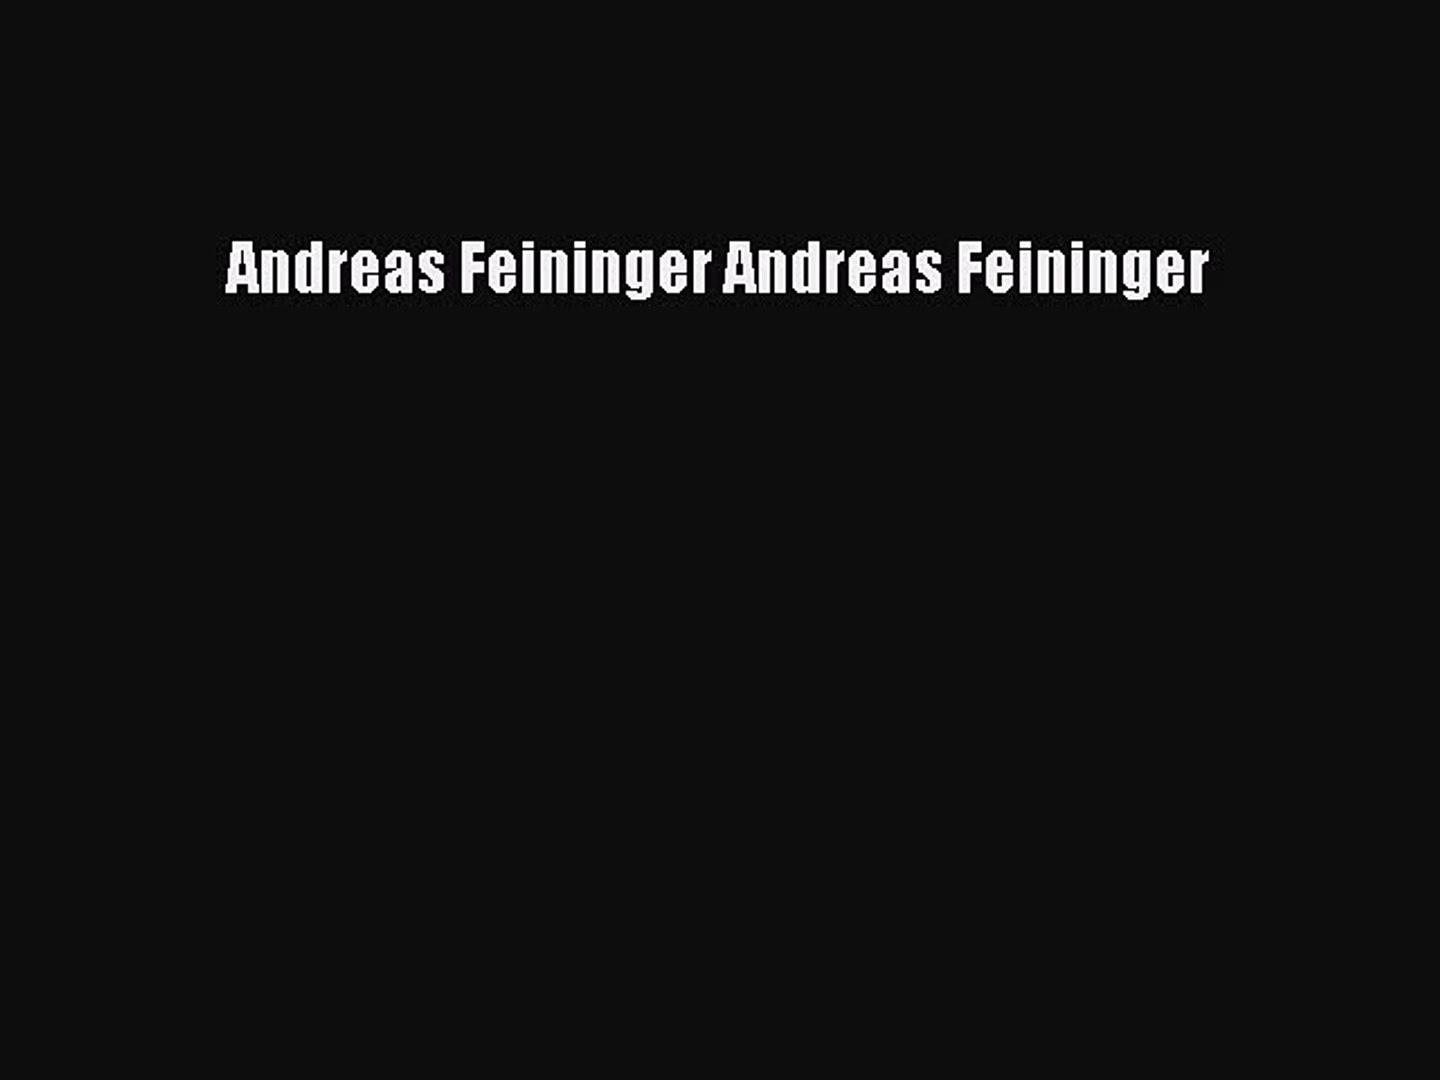 Download Andreas Feininger Andreas Feininger Ebook Online